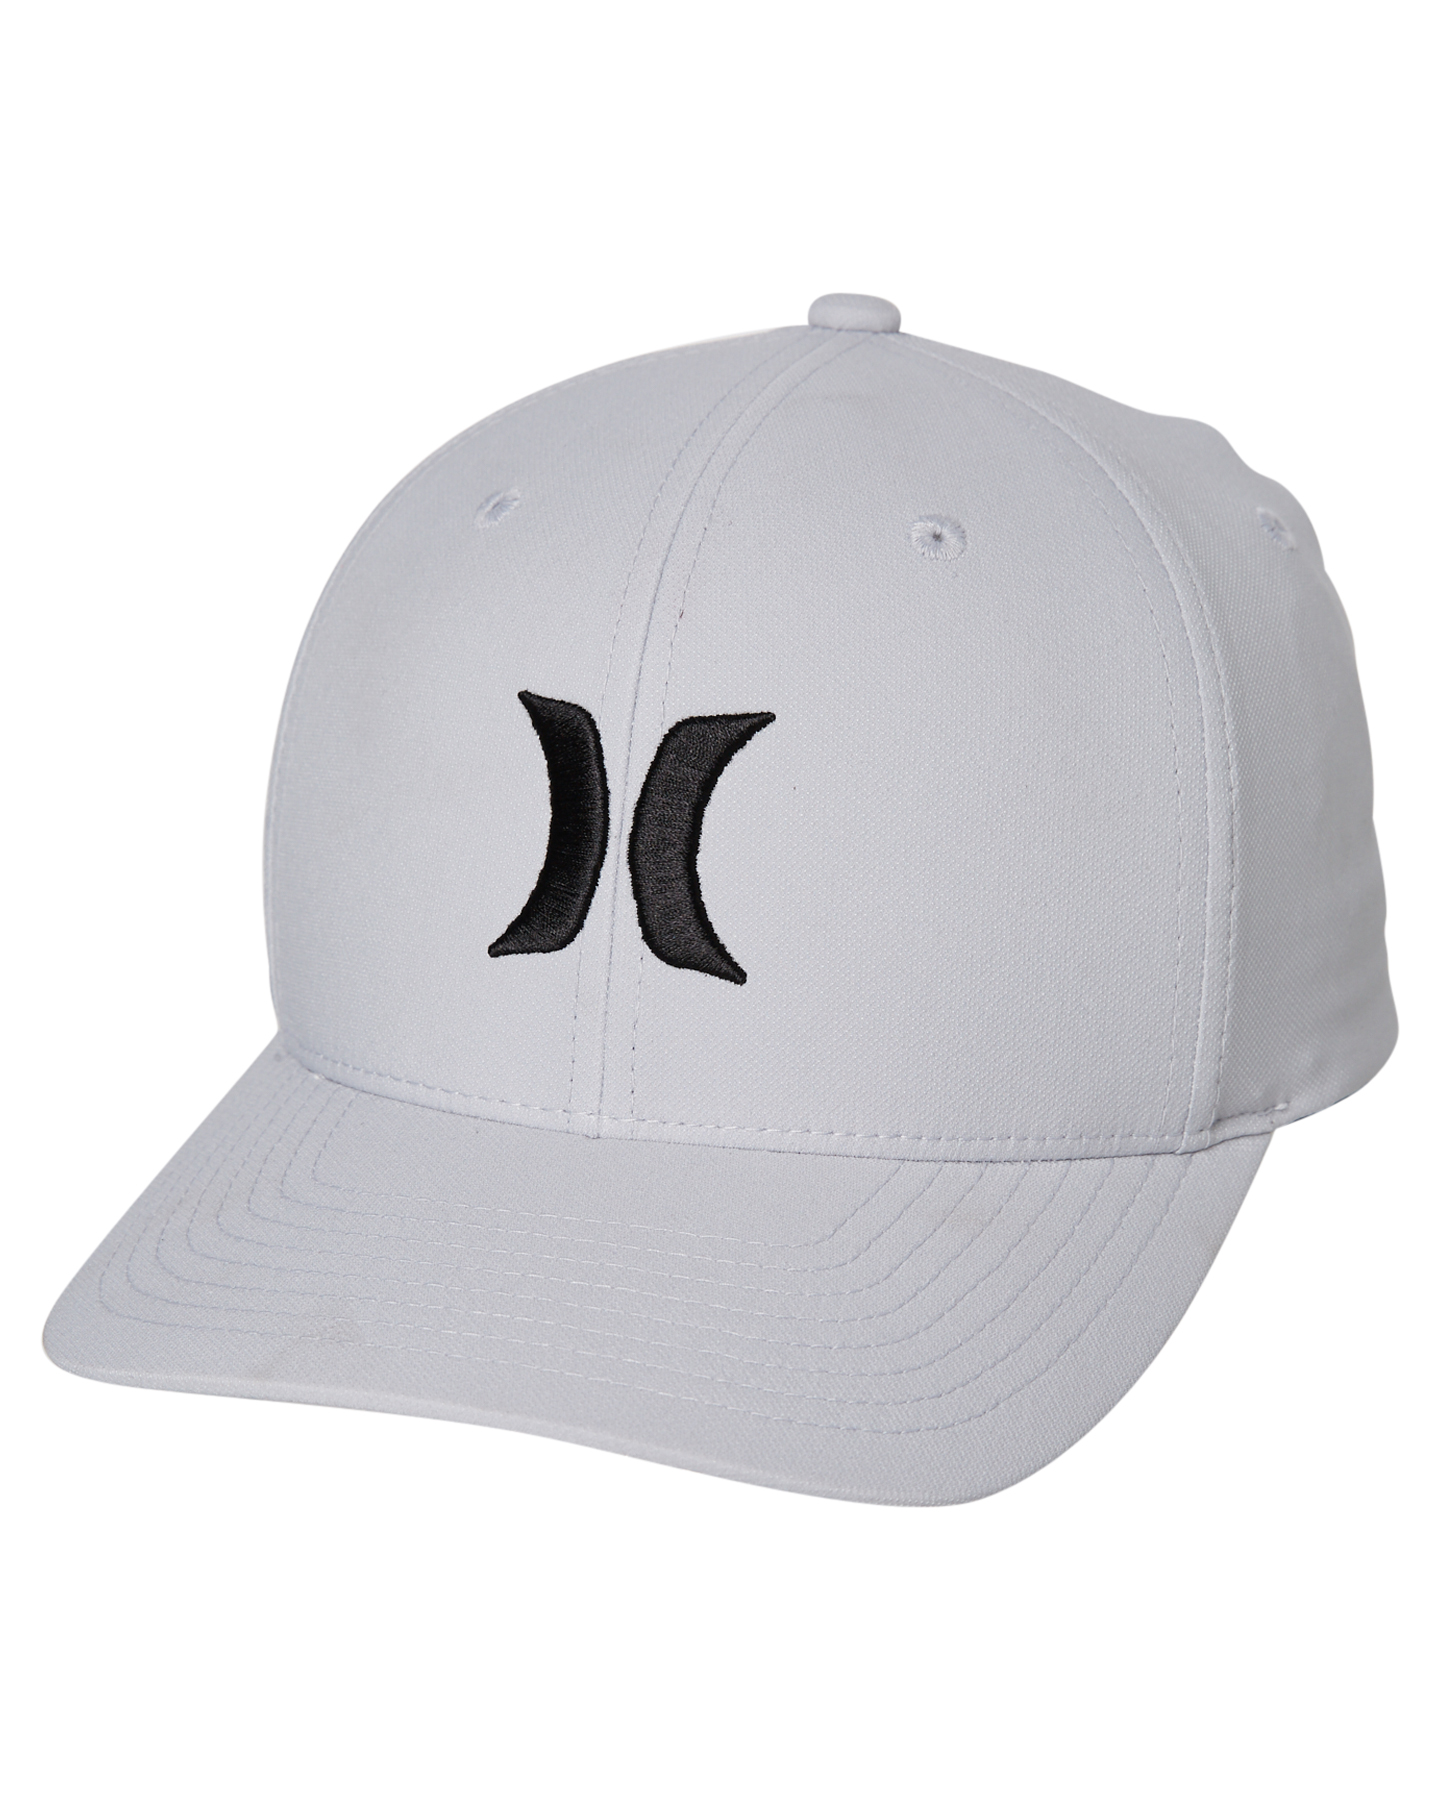 d7134fe1d Dri Fit One And Only Hat